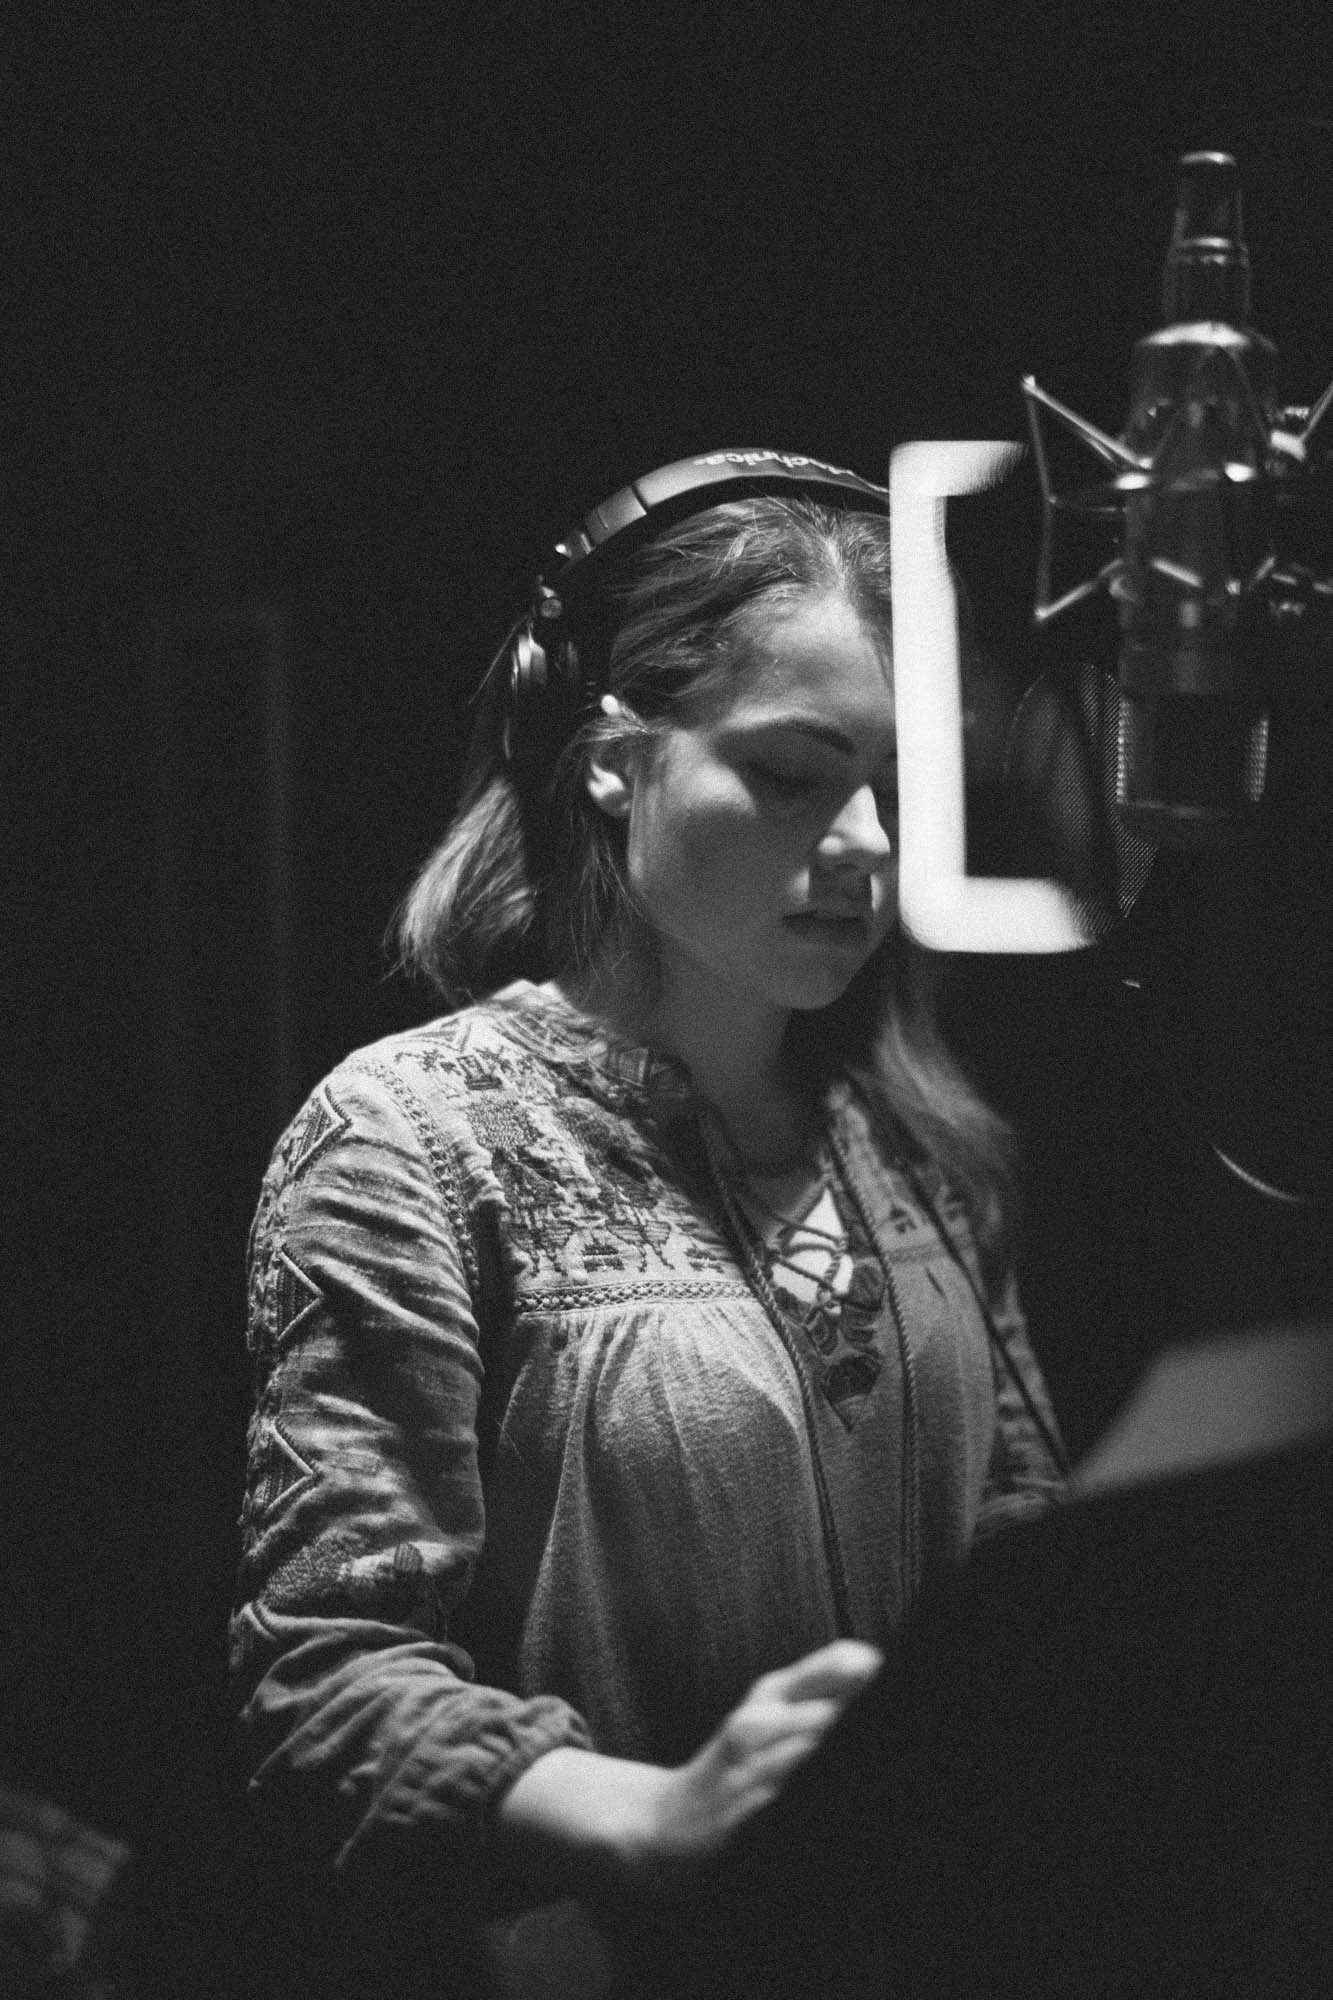 Southern Ground Studios Nashville  Recording the latest O'Connor Band project, produced by Zac Brown  Photo by Alex Chapman of Southern Reel